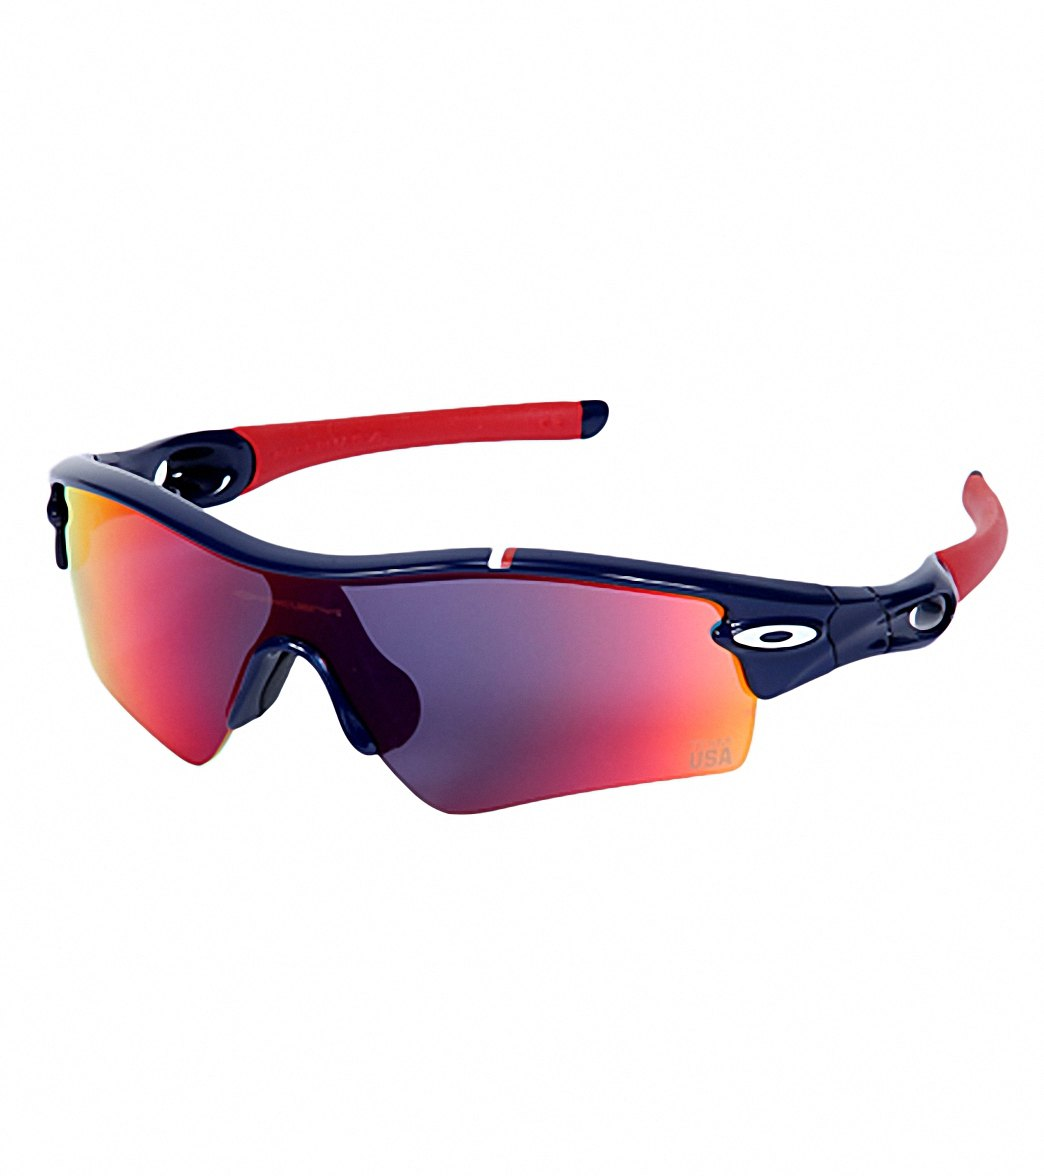 oakley sunglasses usa  Oakley Sunglasses Usa Price - atlantabeadgallery